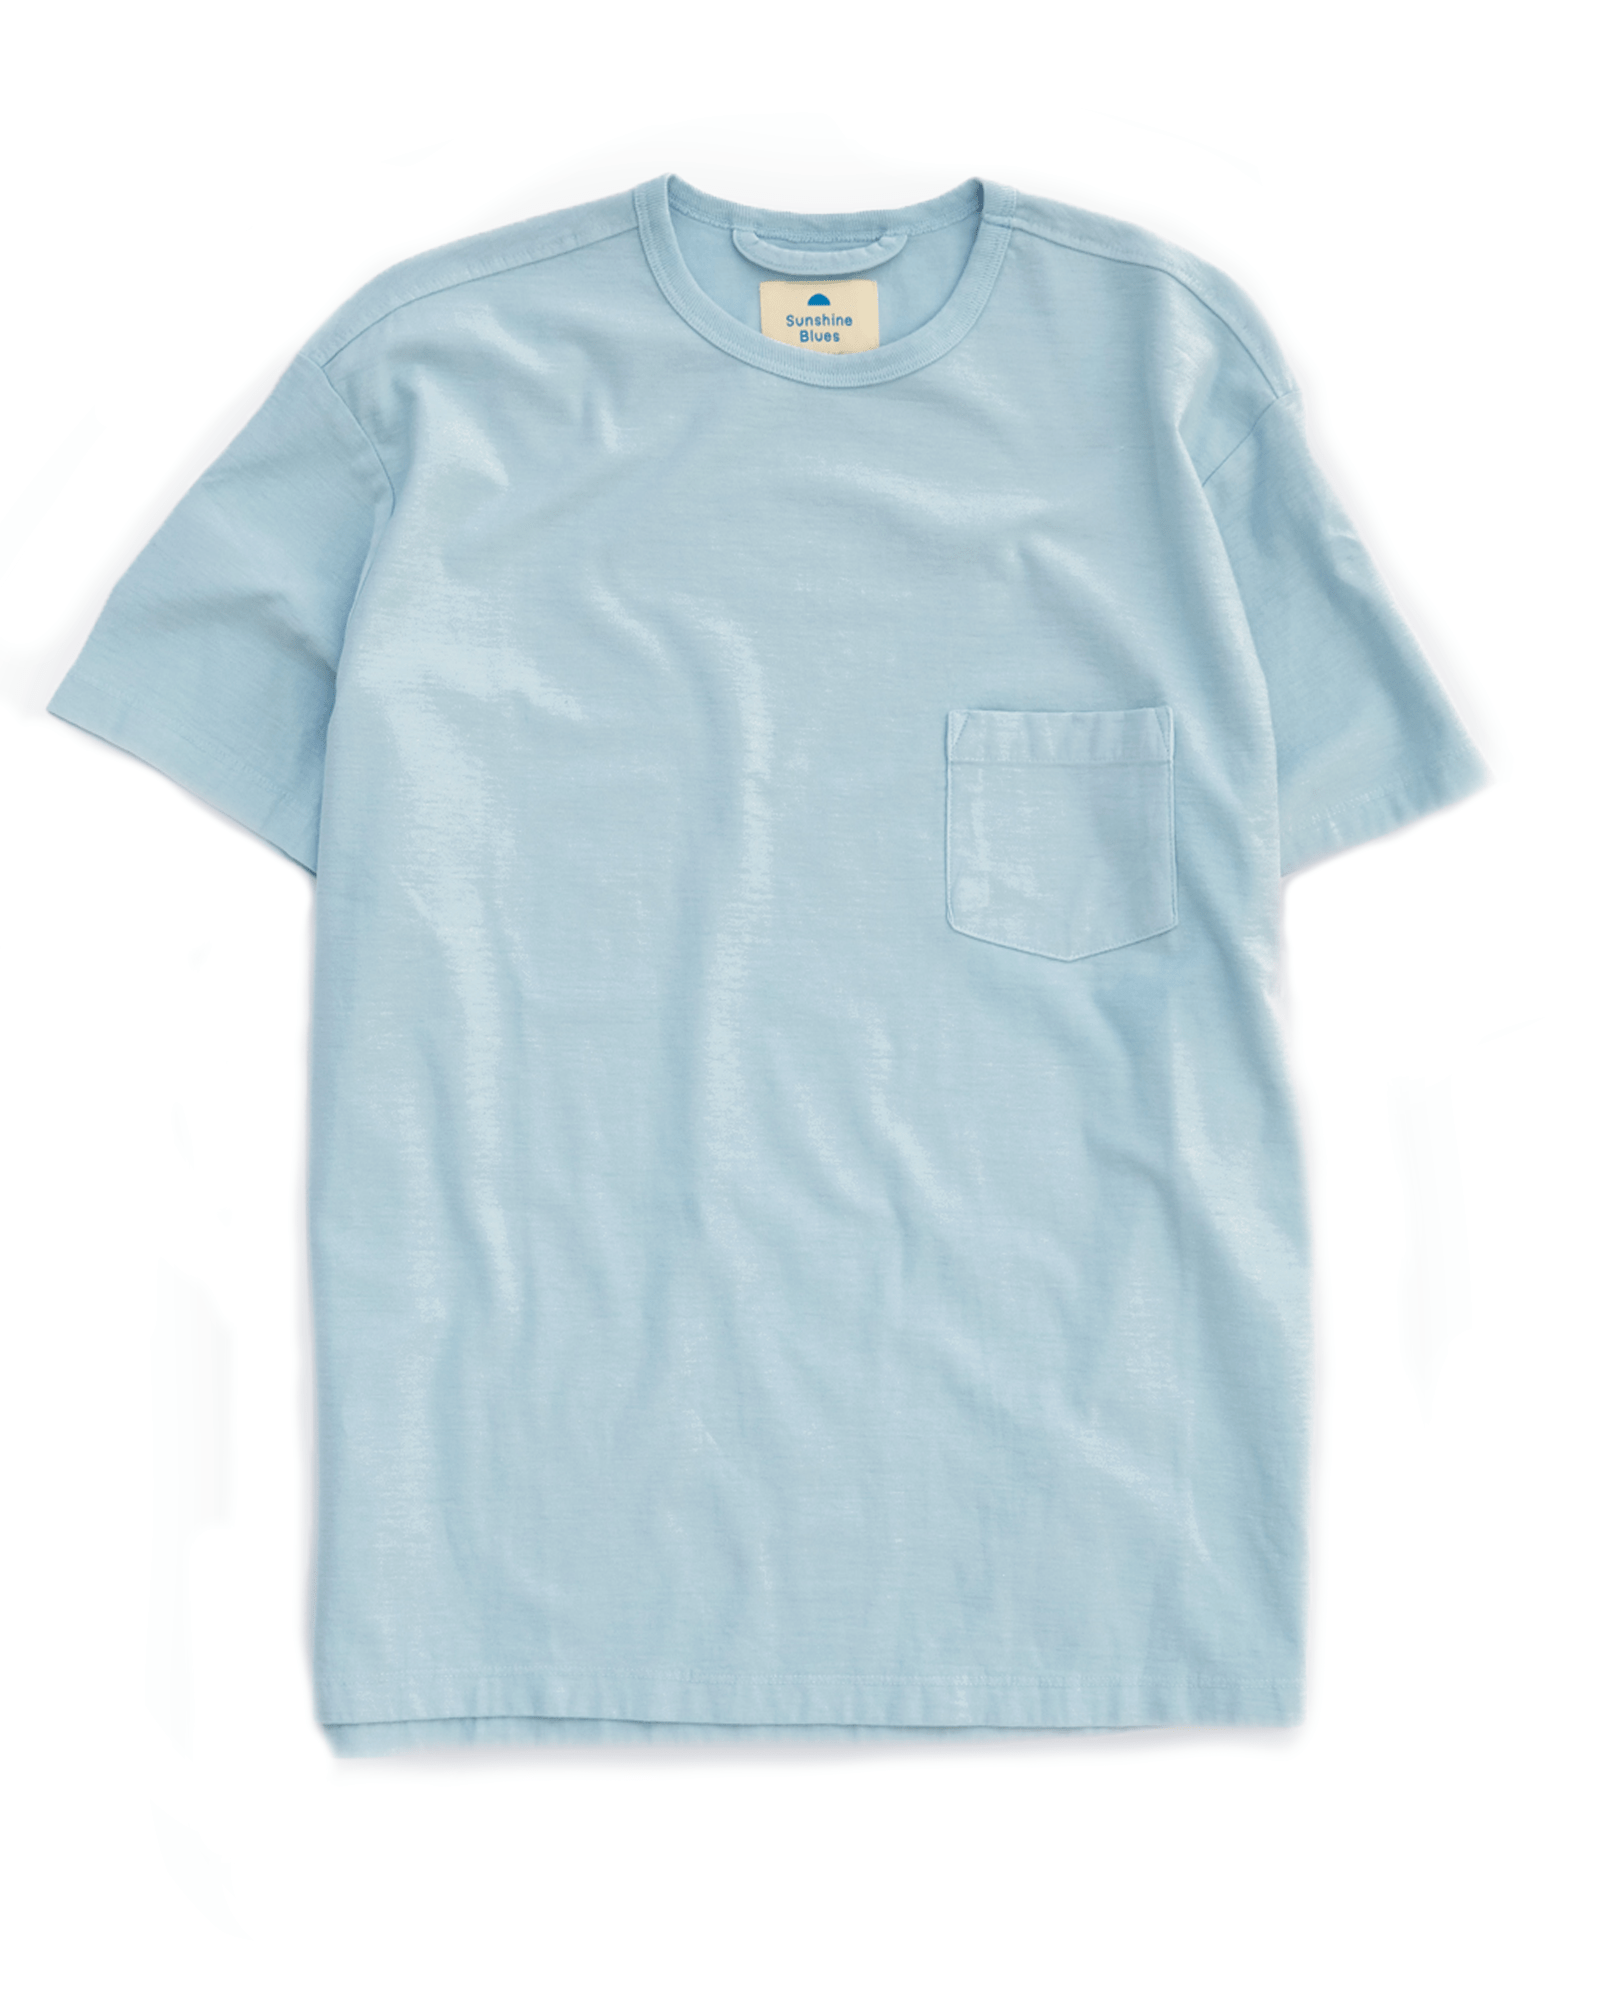 SSB Crystal Blue T-Shirt